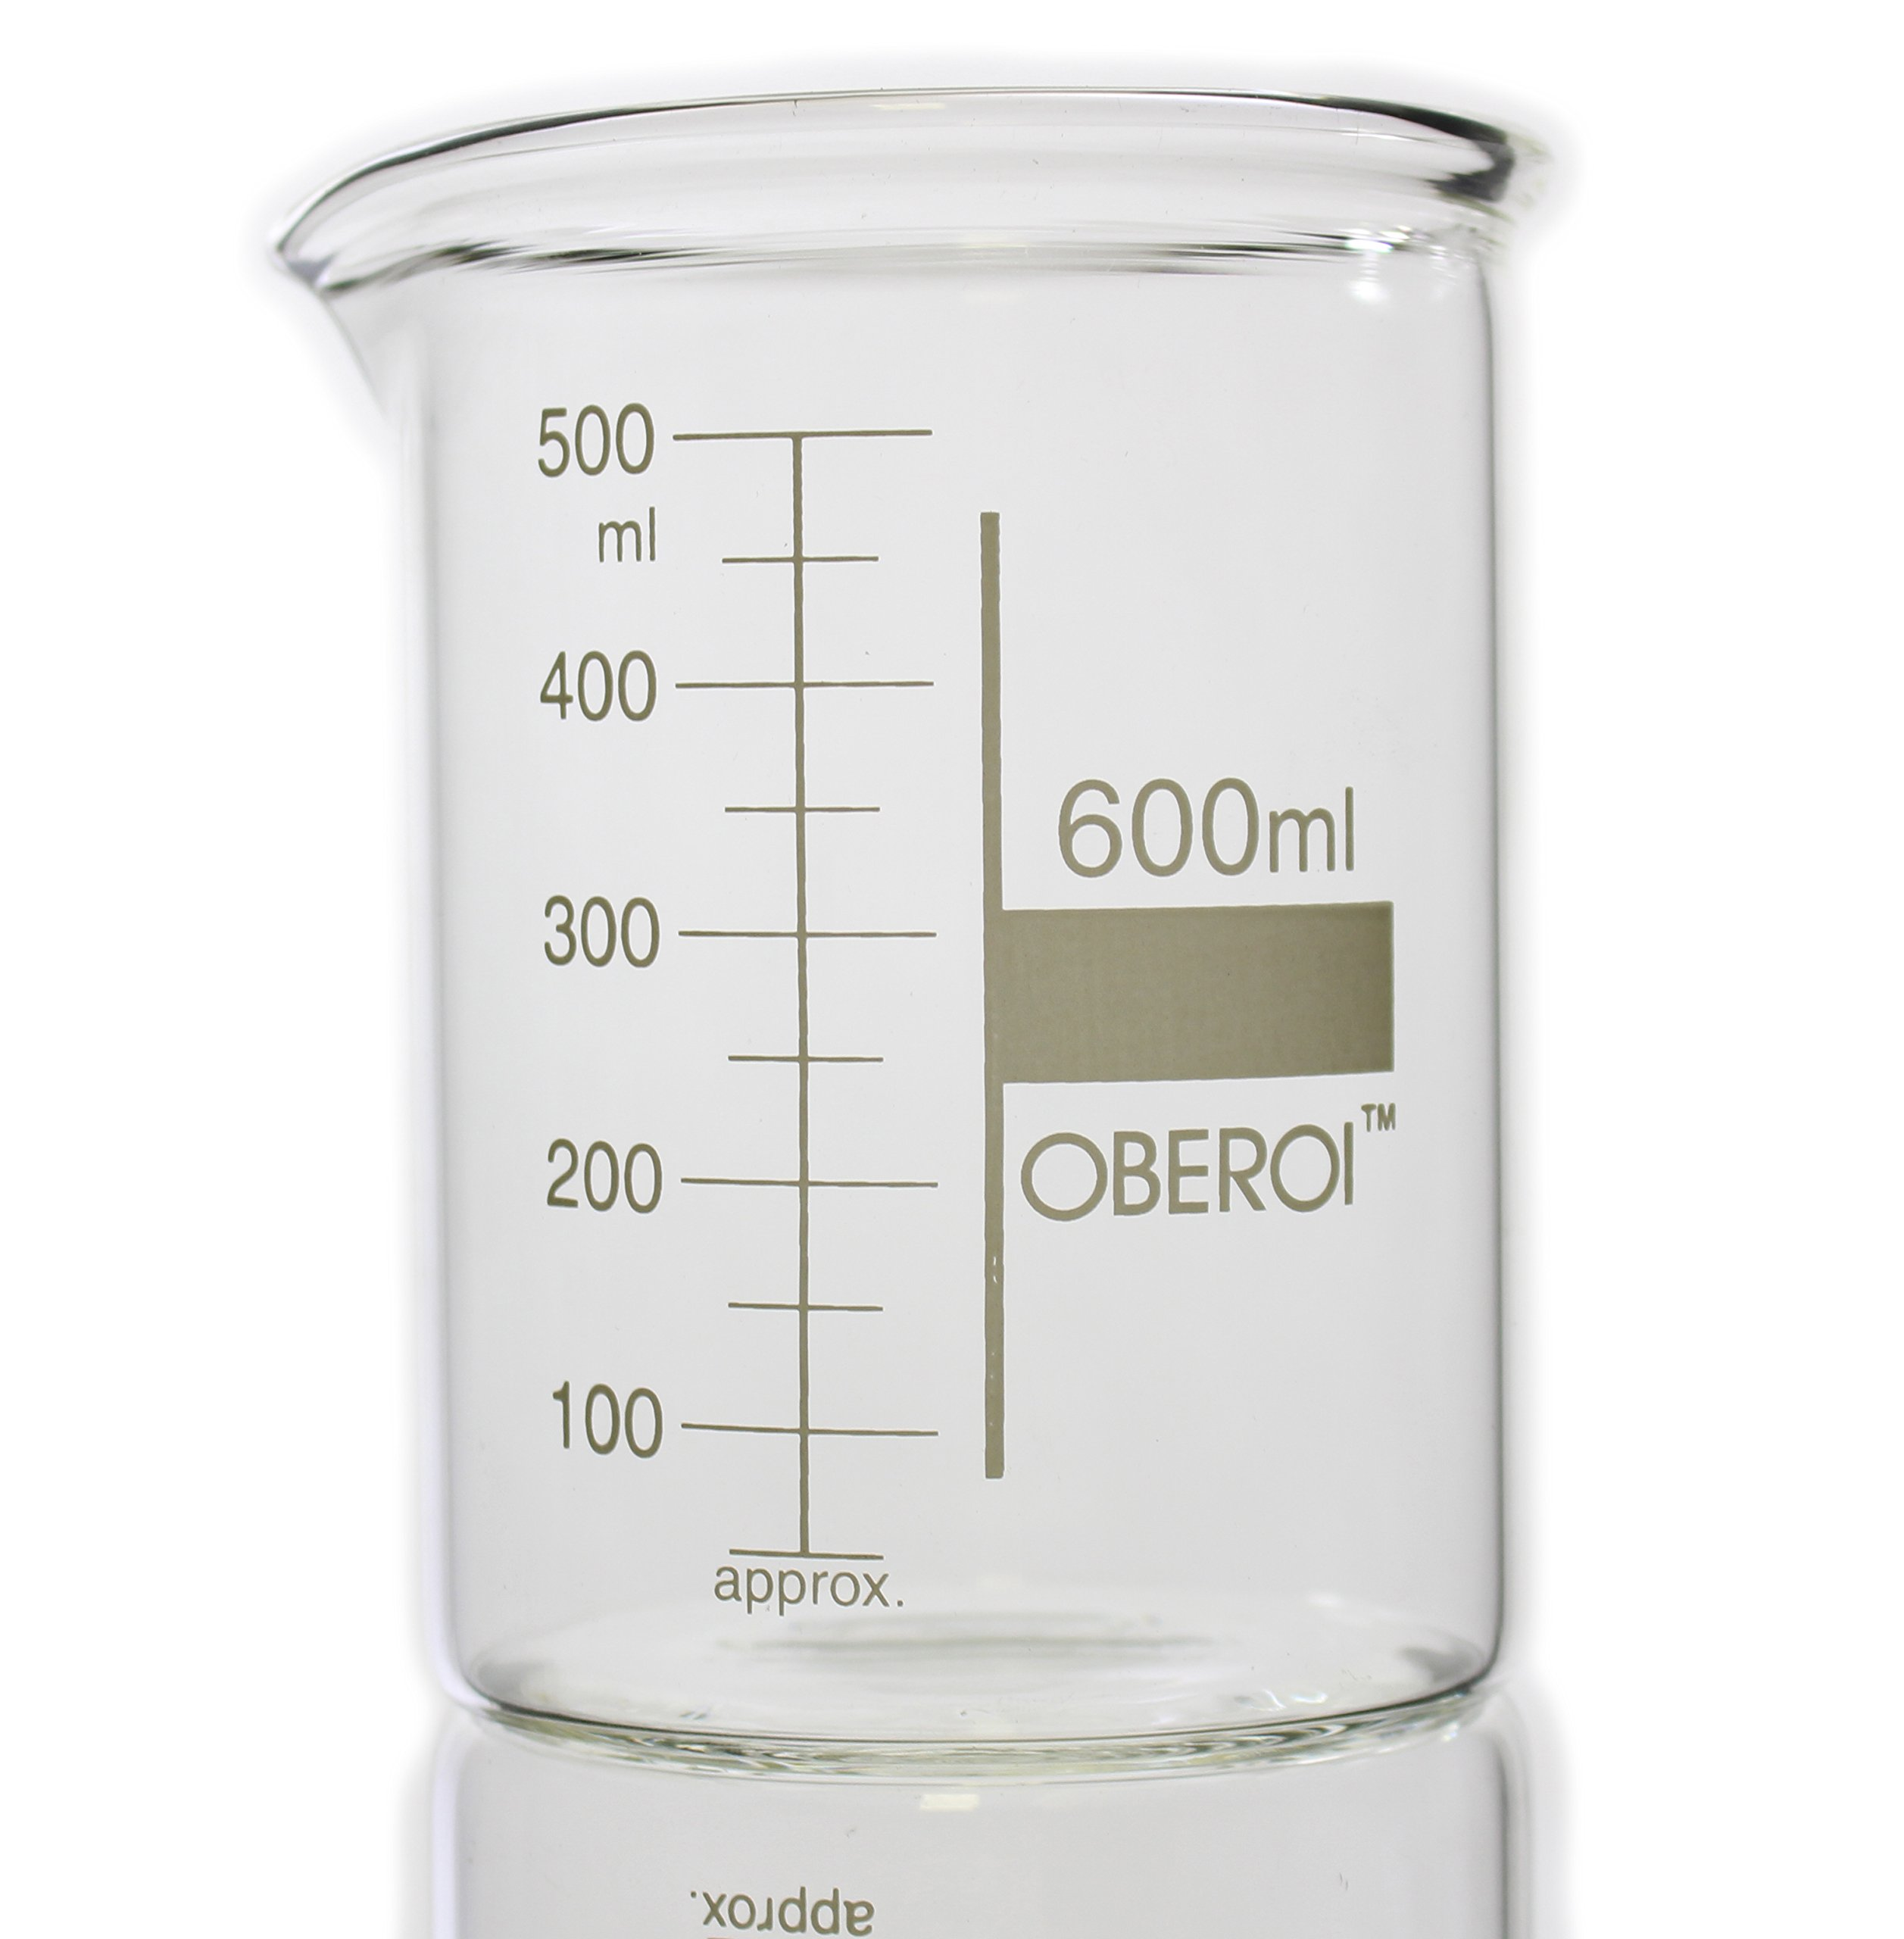 600 ml Glass Beaker, Low Form, Graduated with Spout